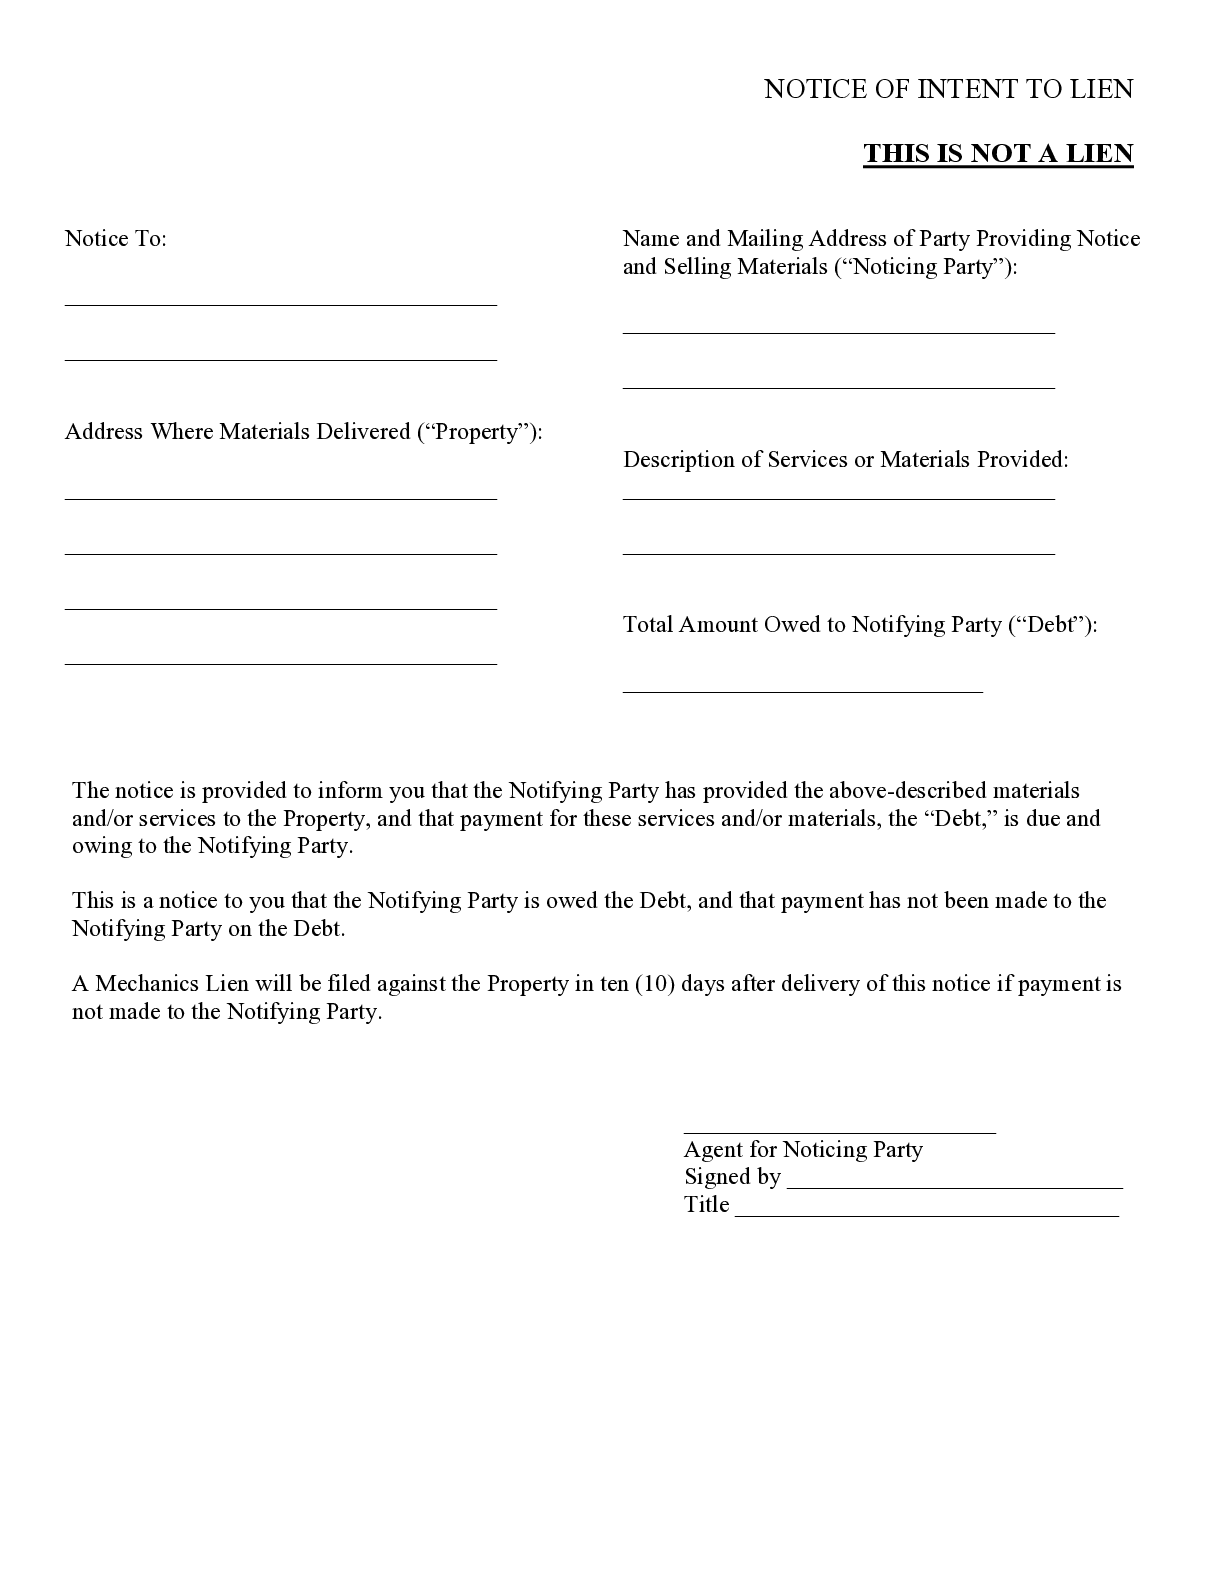 Virginia Notice Of Intent To Lien Form